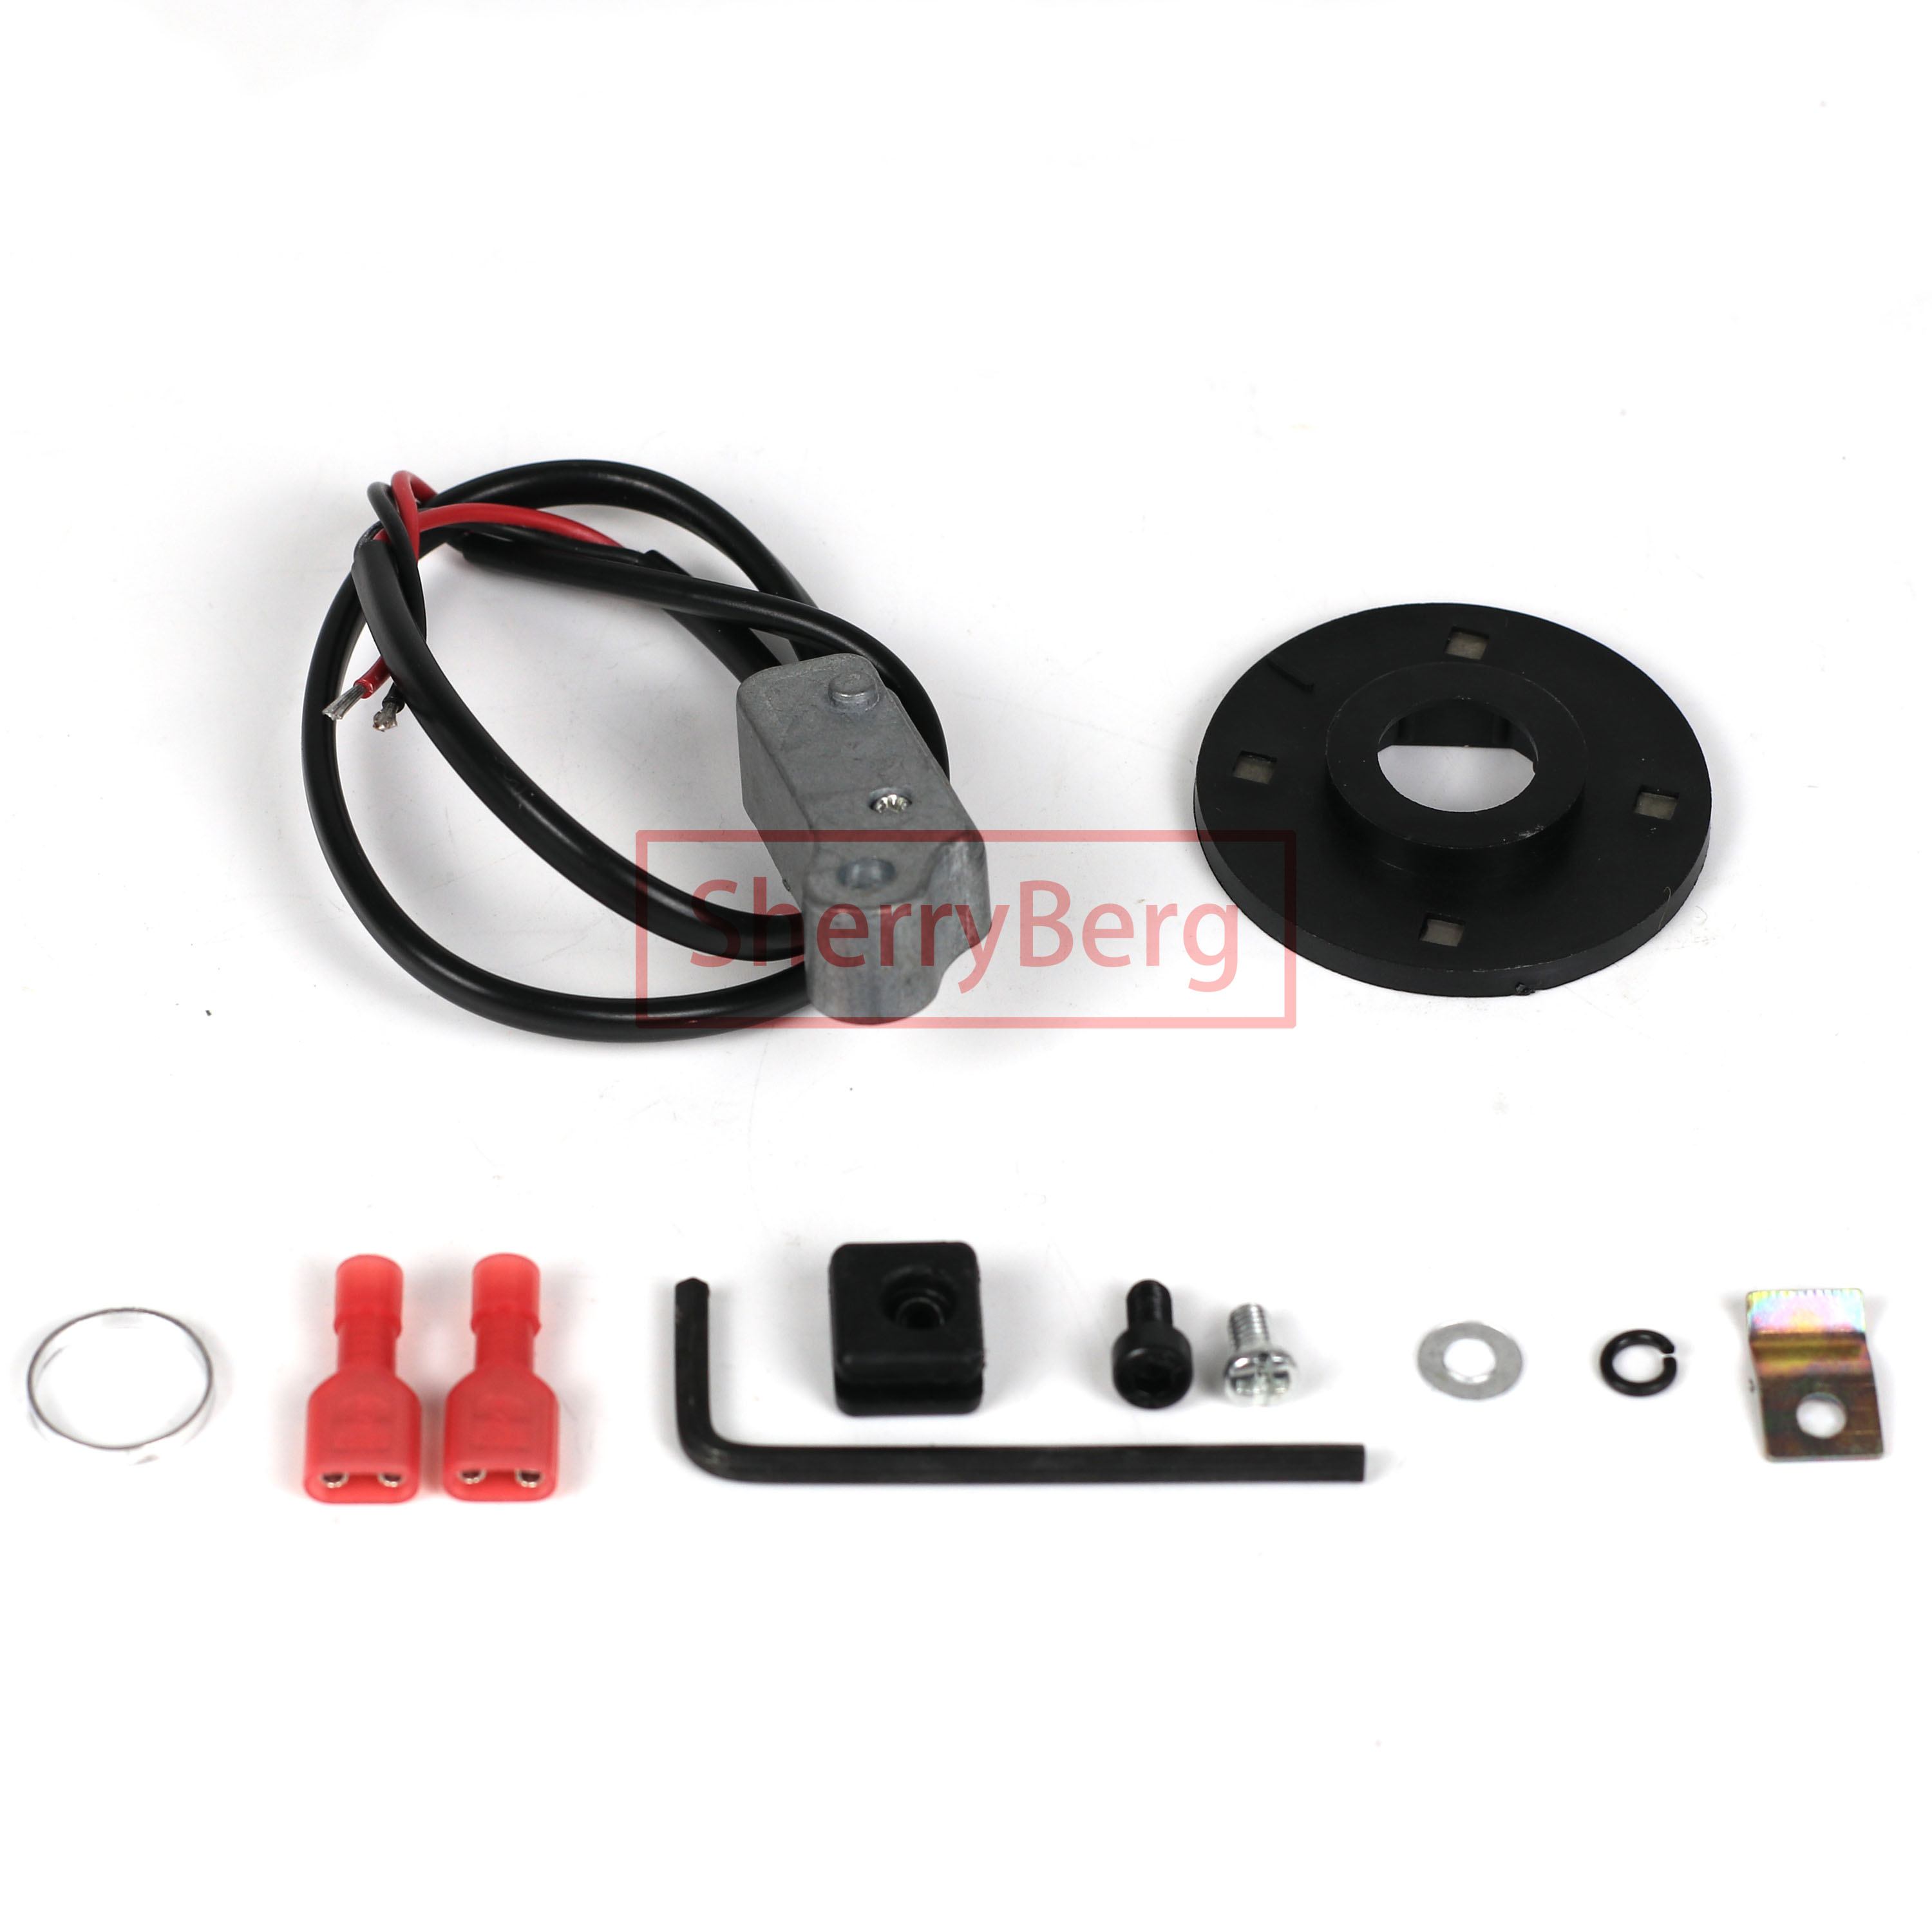 SherryBerg Distributor Electronic IGNITION KIT for 009 Ignition Distributor Electronic Module Tune Kit For VW Aircooled Beetle